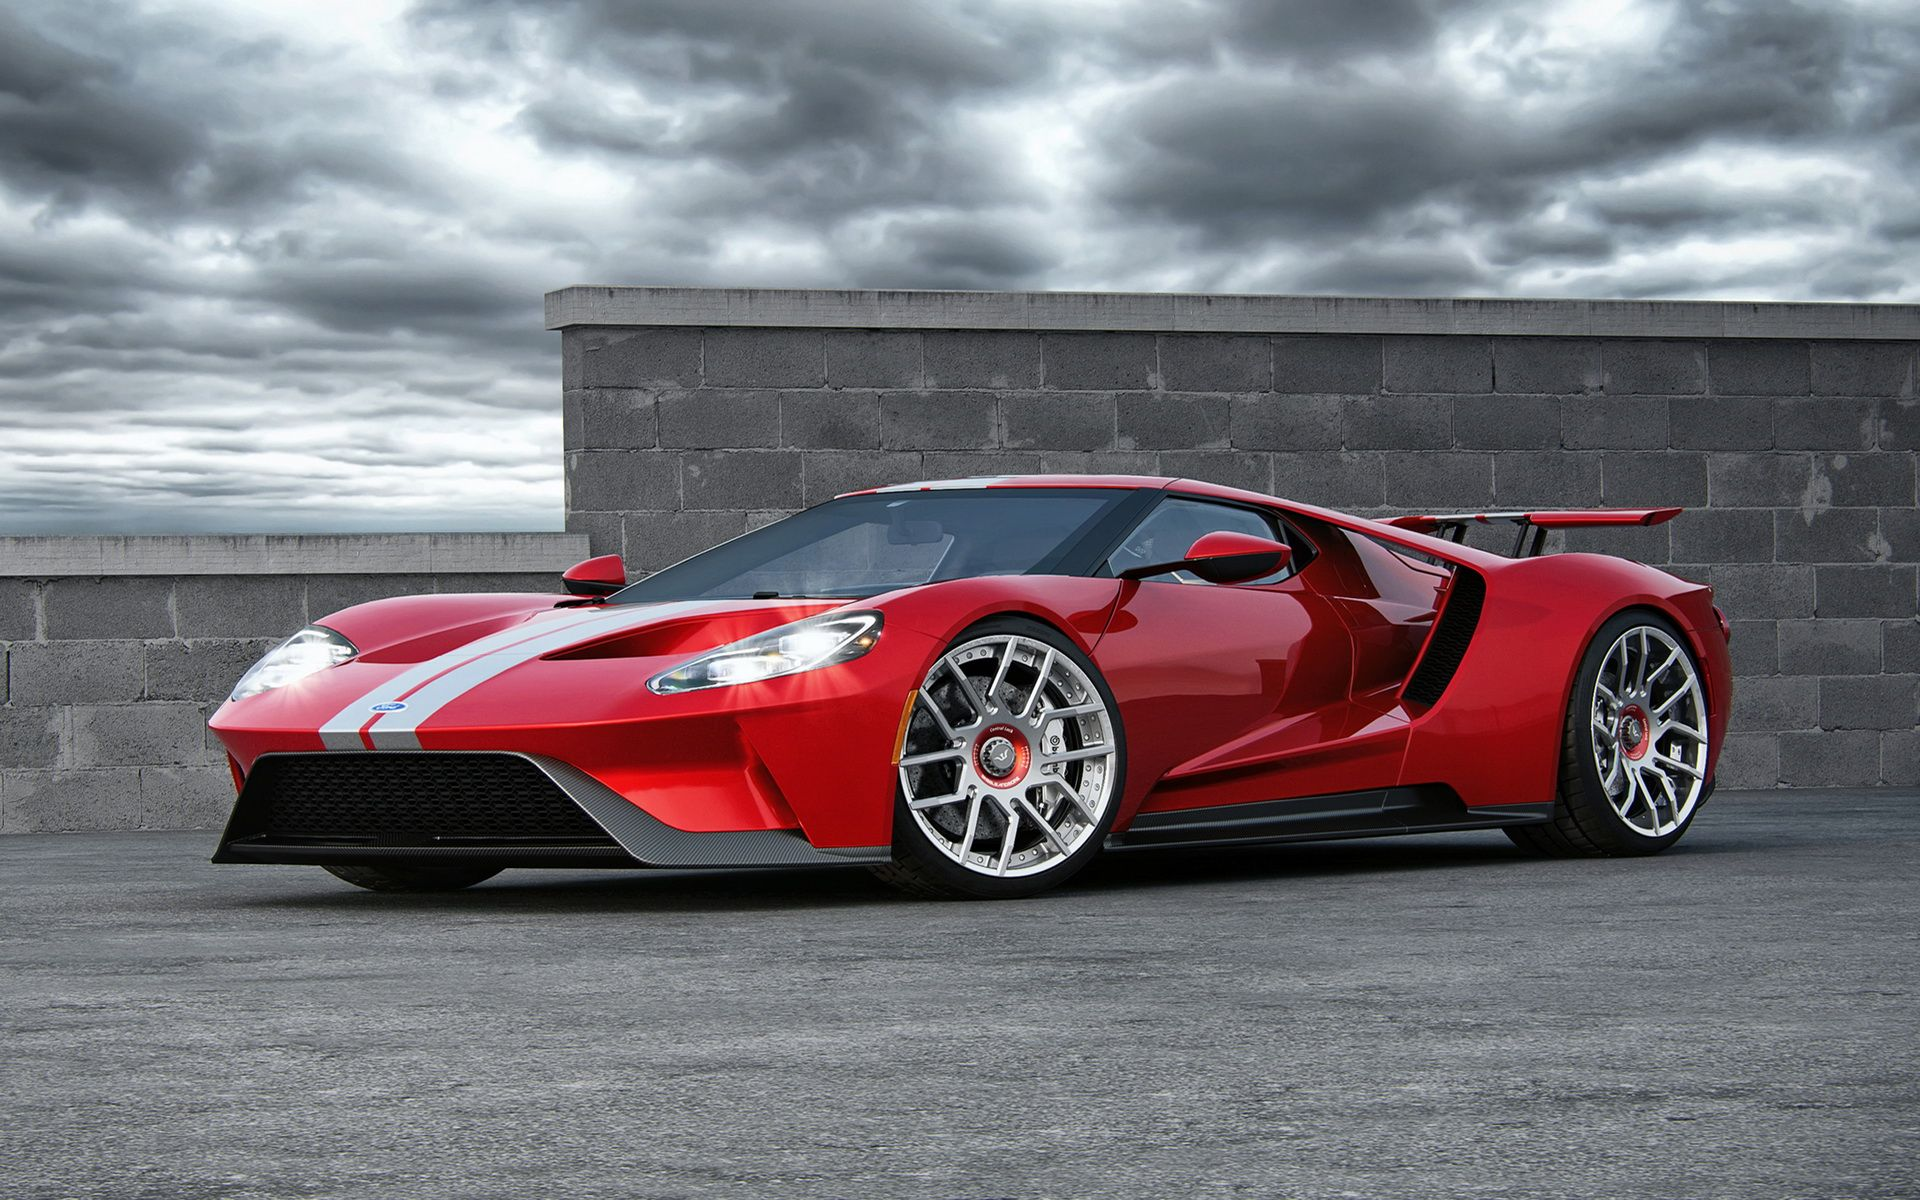 Ford Gts Old And New Try On Wheelsandmores Carbon Fiber Rims Carscoops